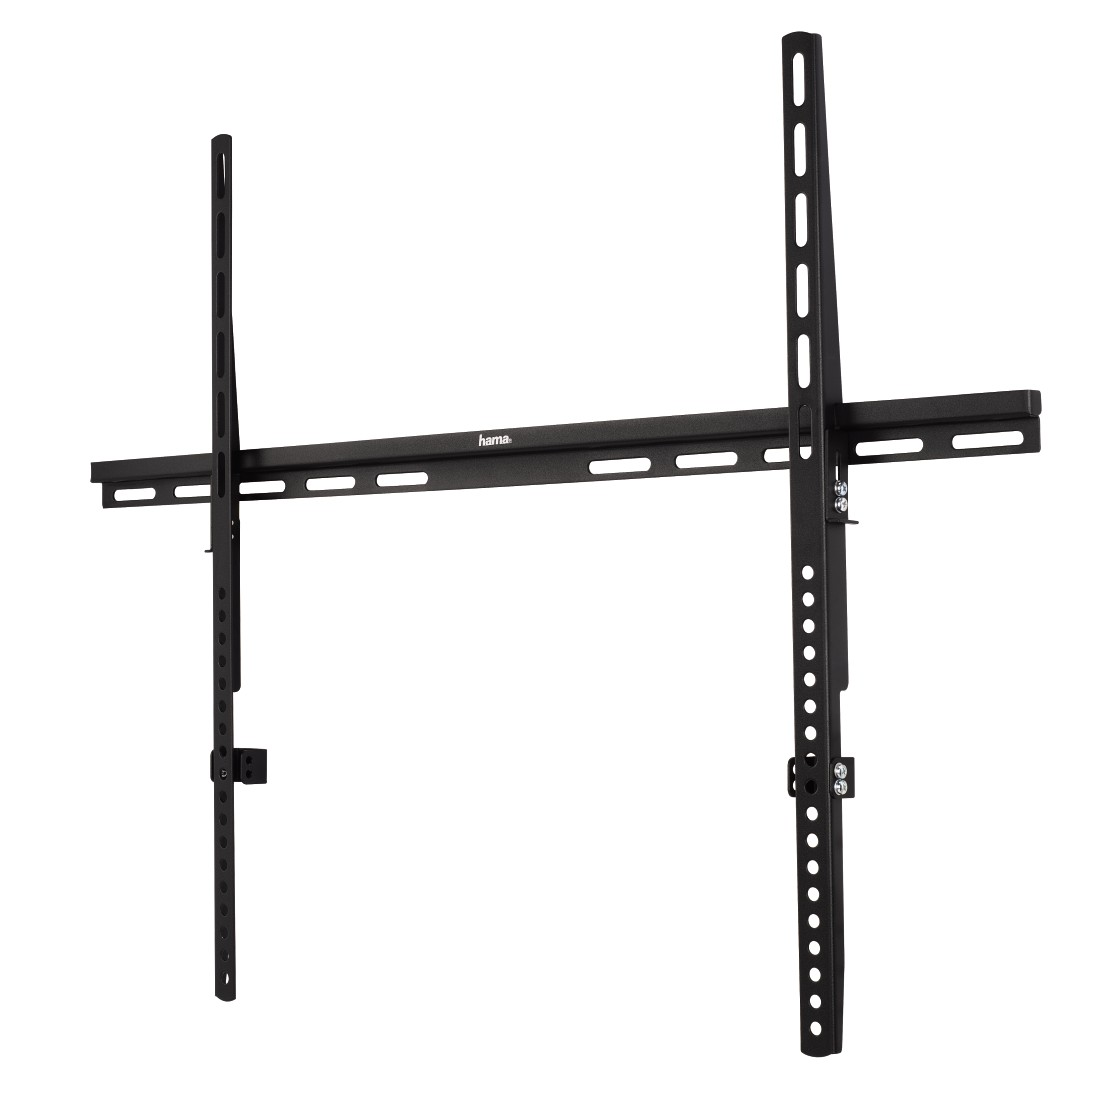 Hama Products 00012027 Fixed Super Flat Wall Bracket For